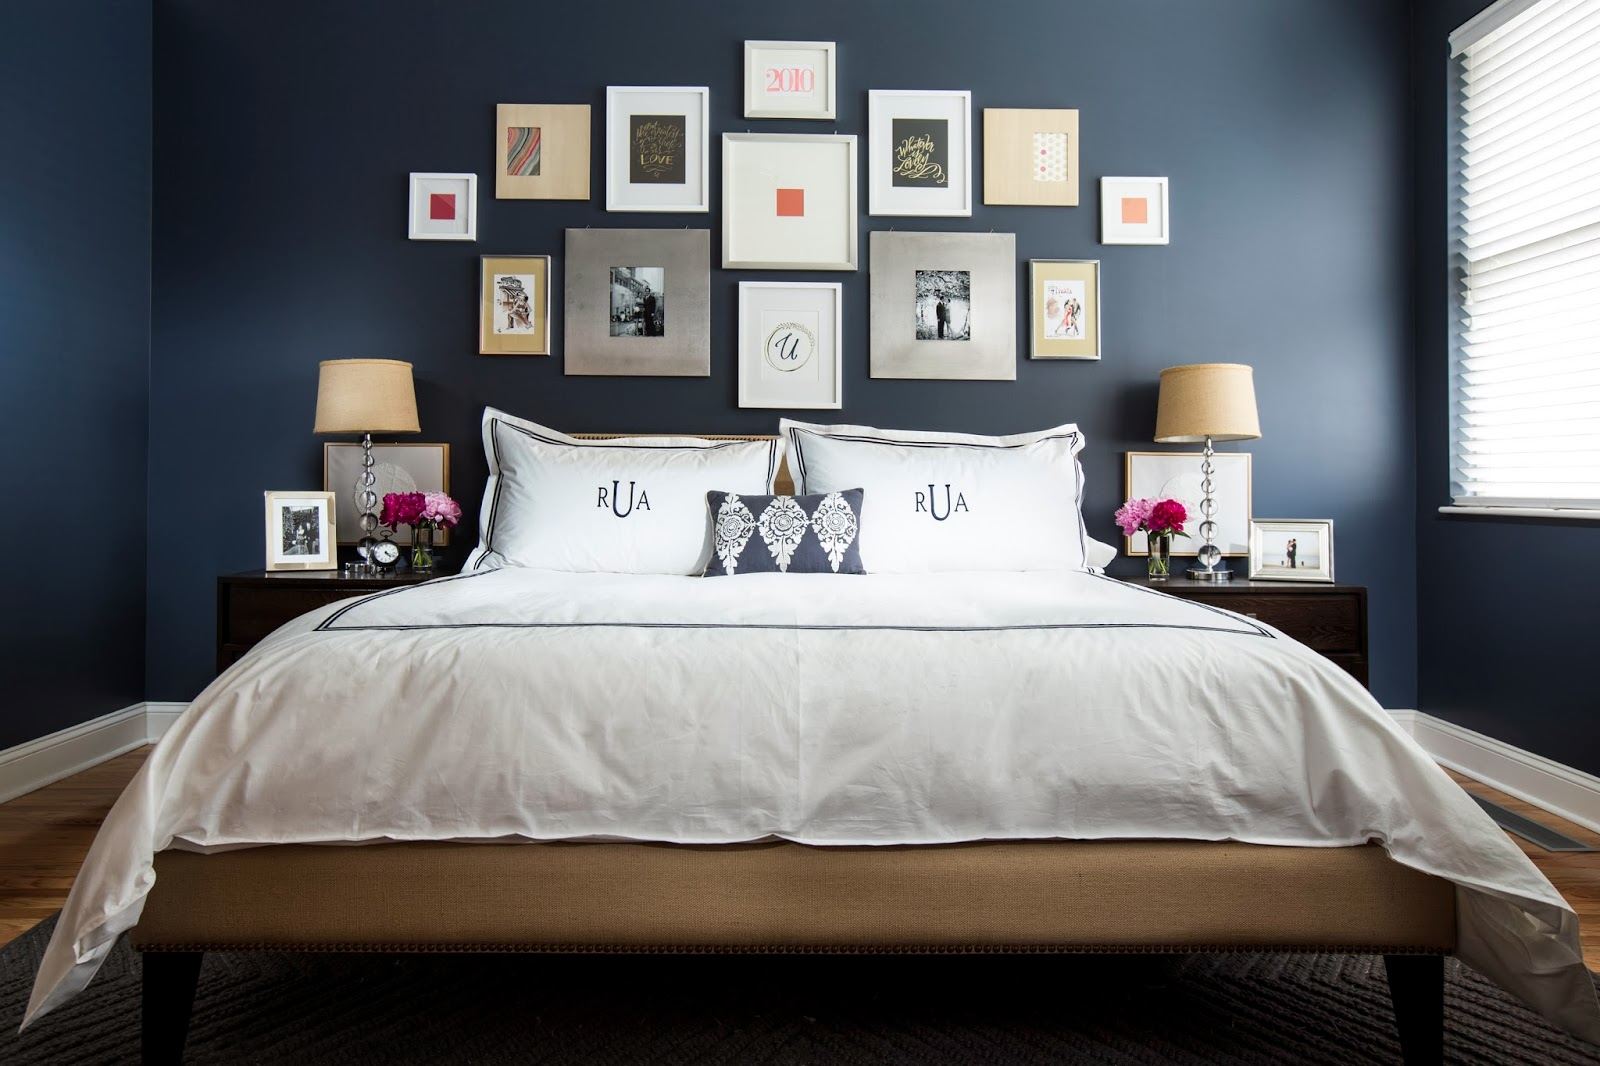 Dark Blue Bedroom Design Decor Ideas With Photo Frame Decoration